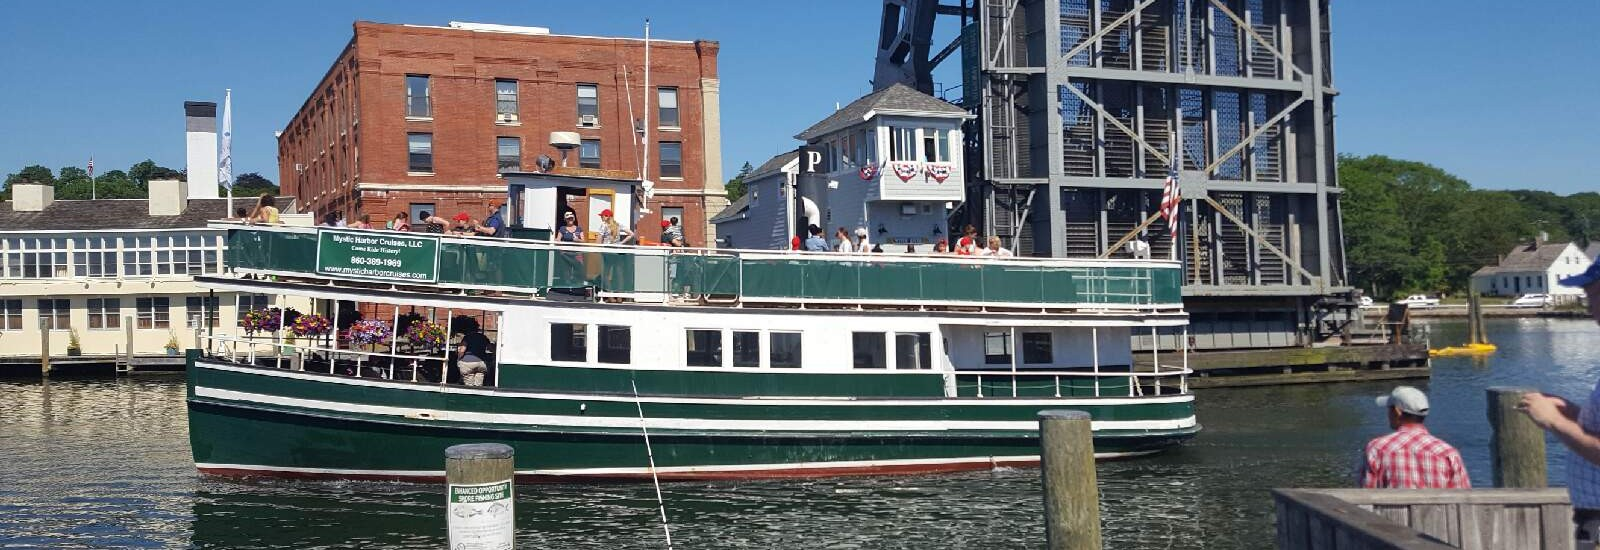 Mystic Harbor Cruises - Prudence